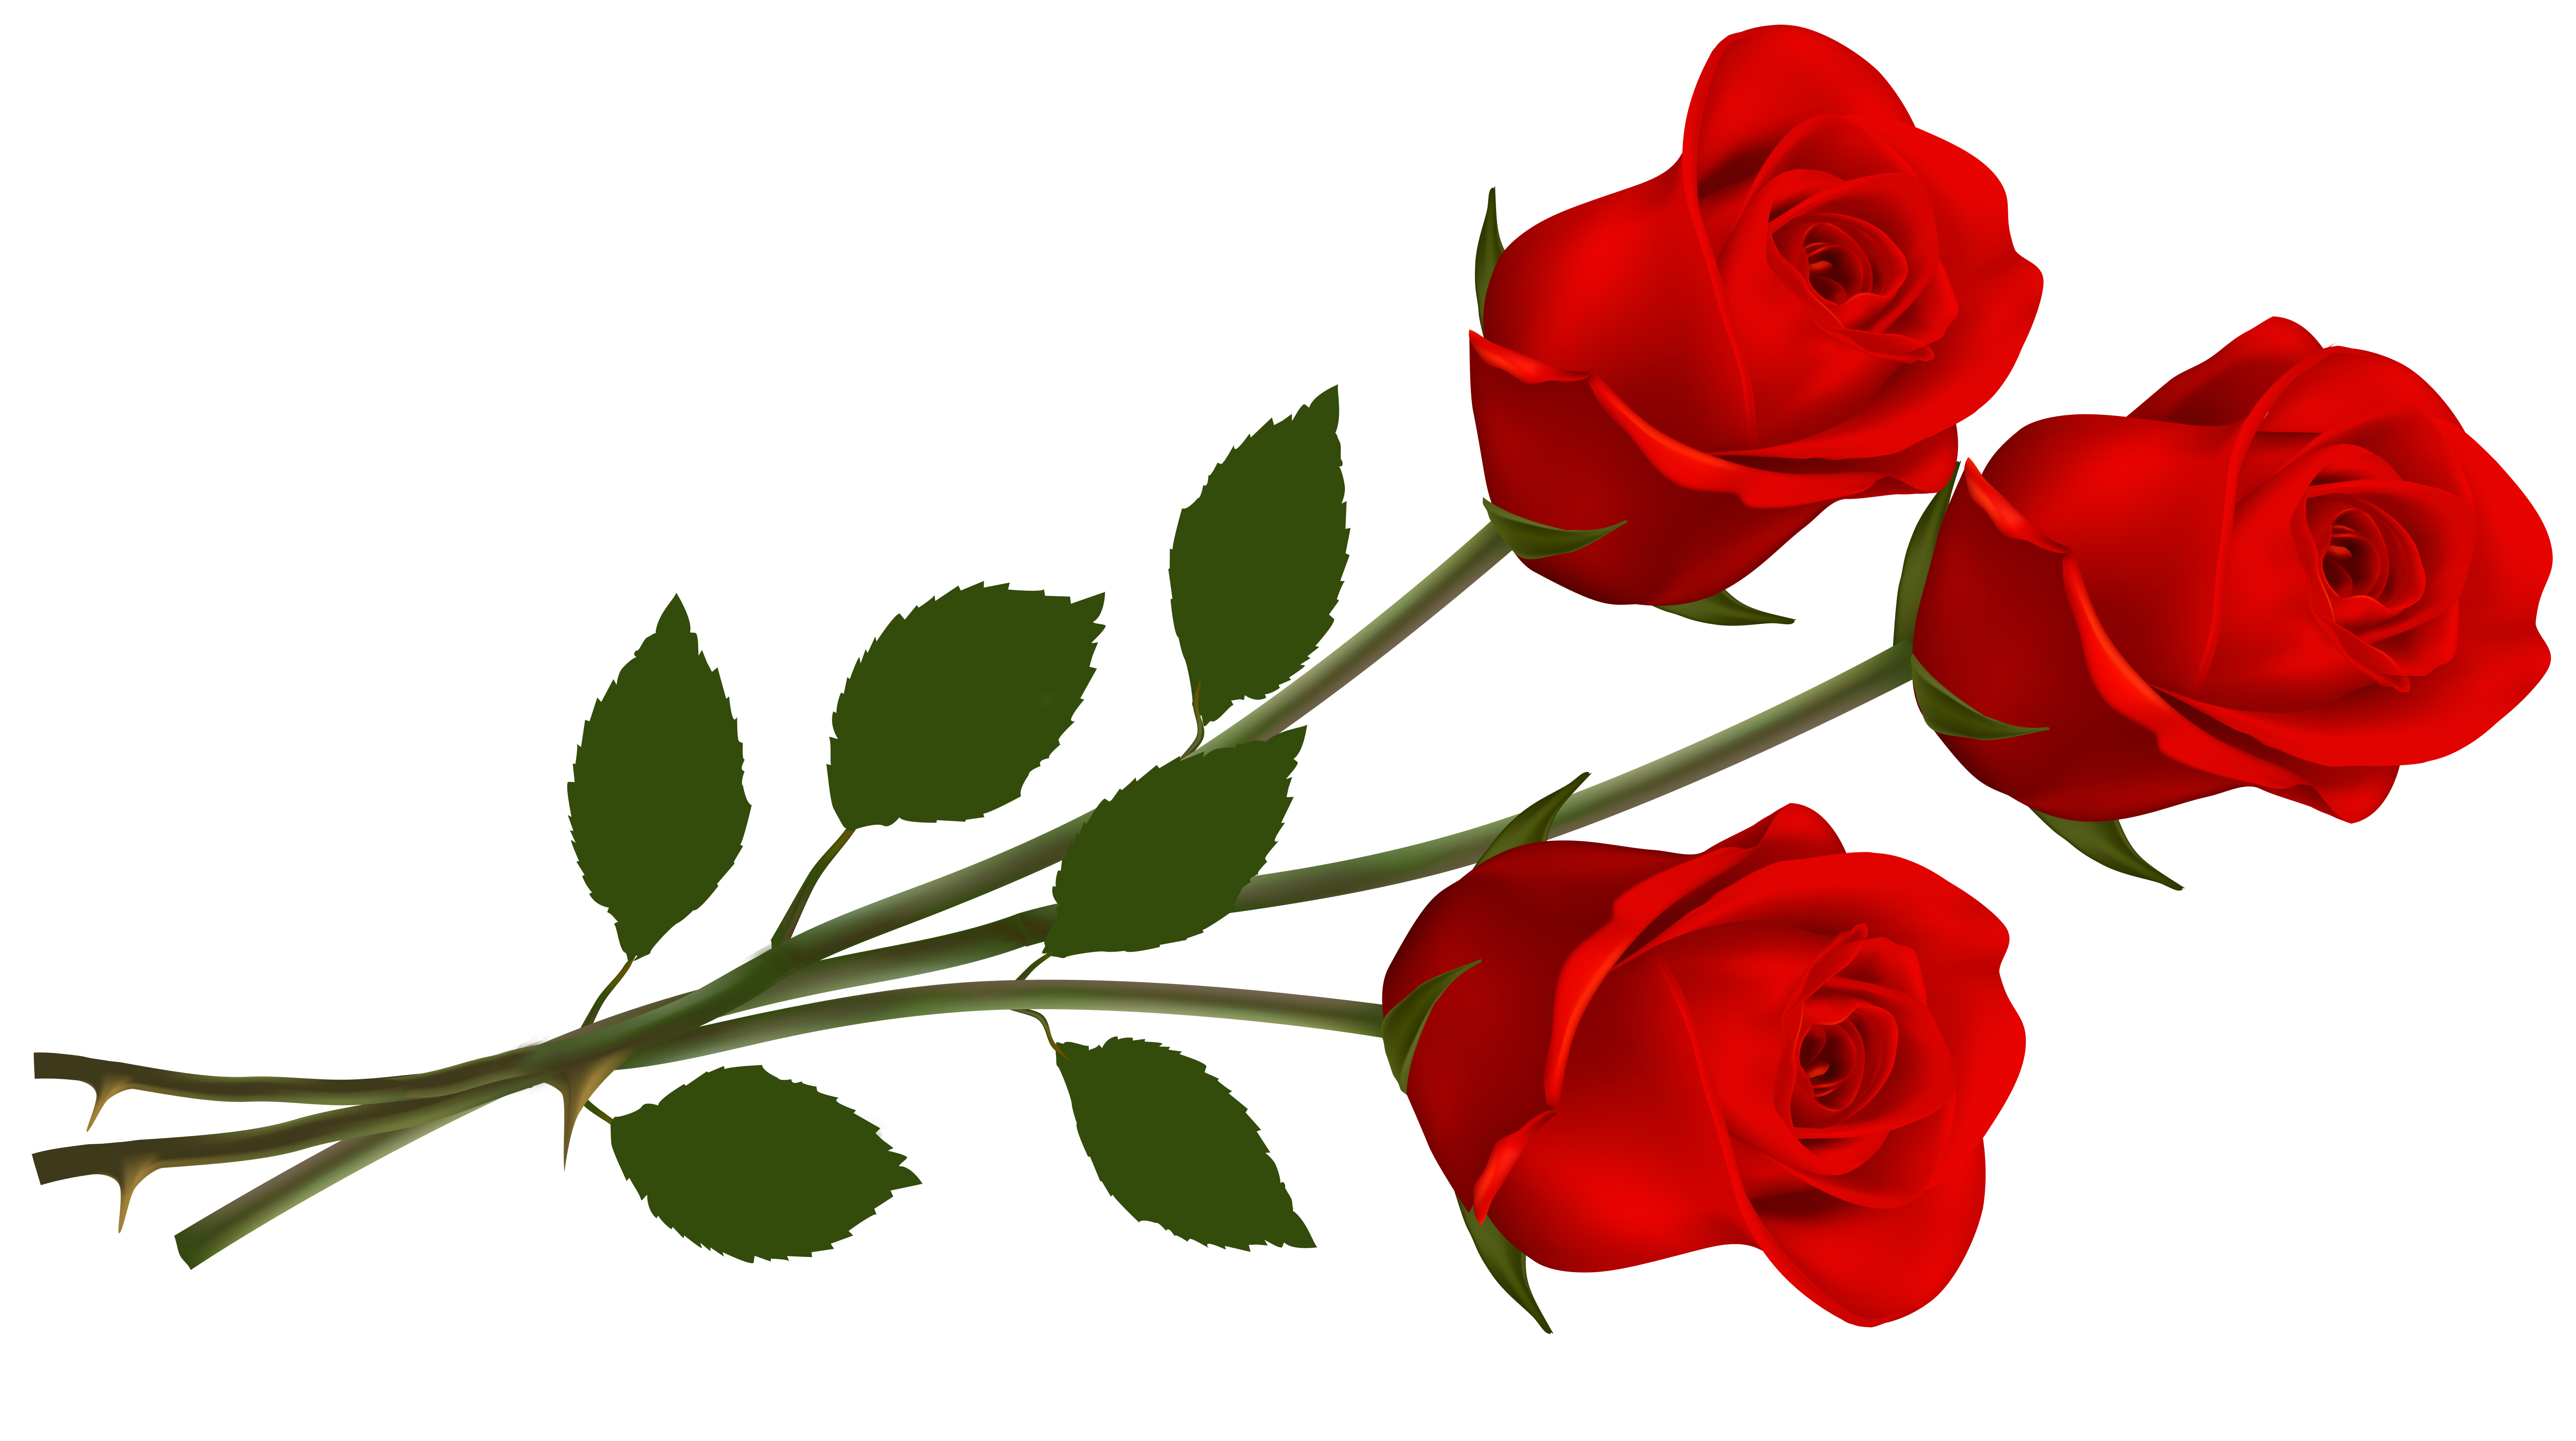 6500x3637 Clip Art Red Rose Roses Red Roses, Single Red Rose